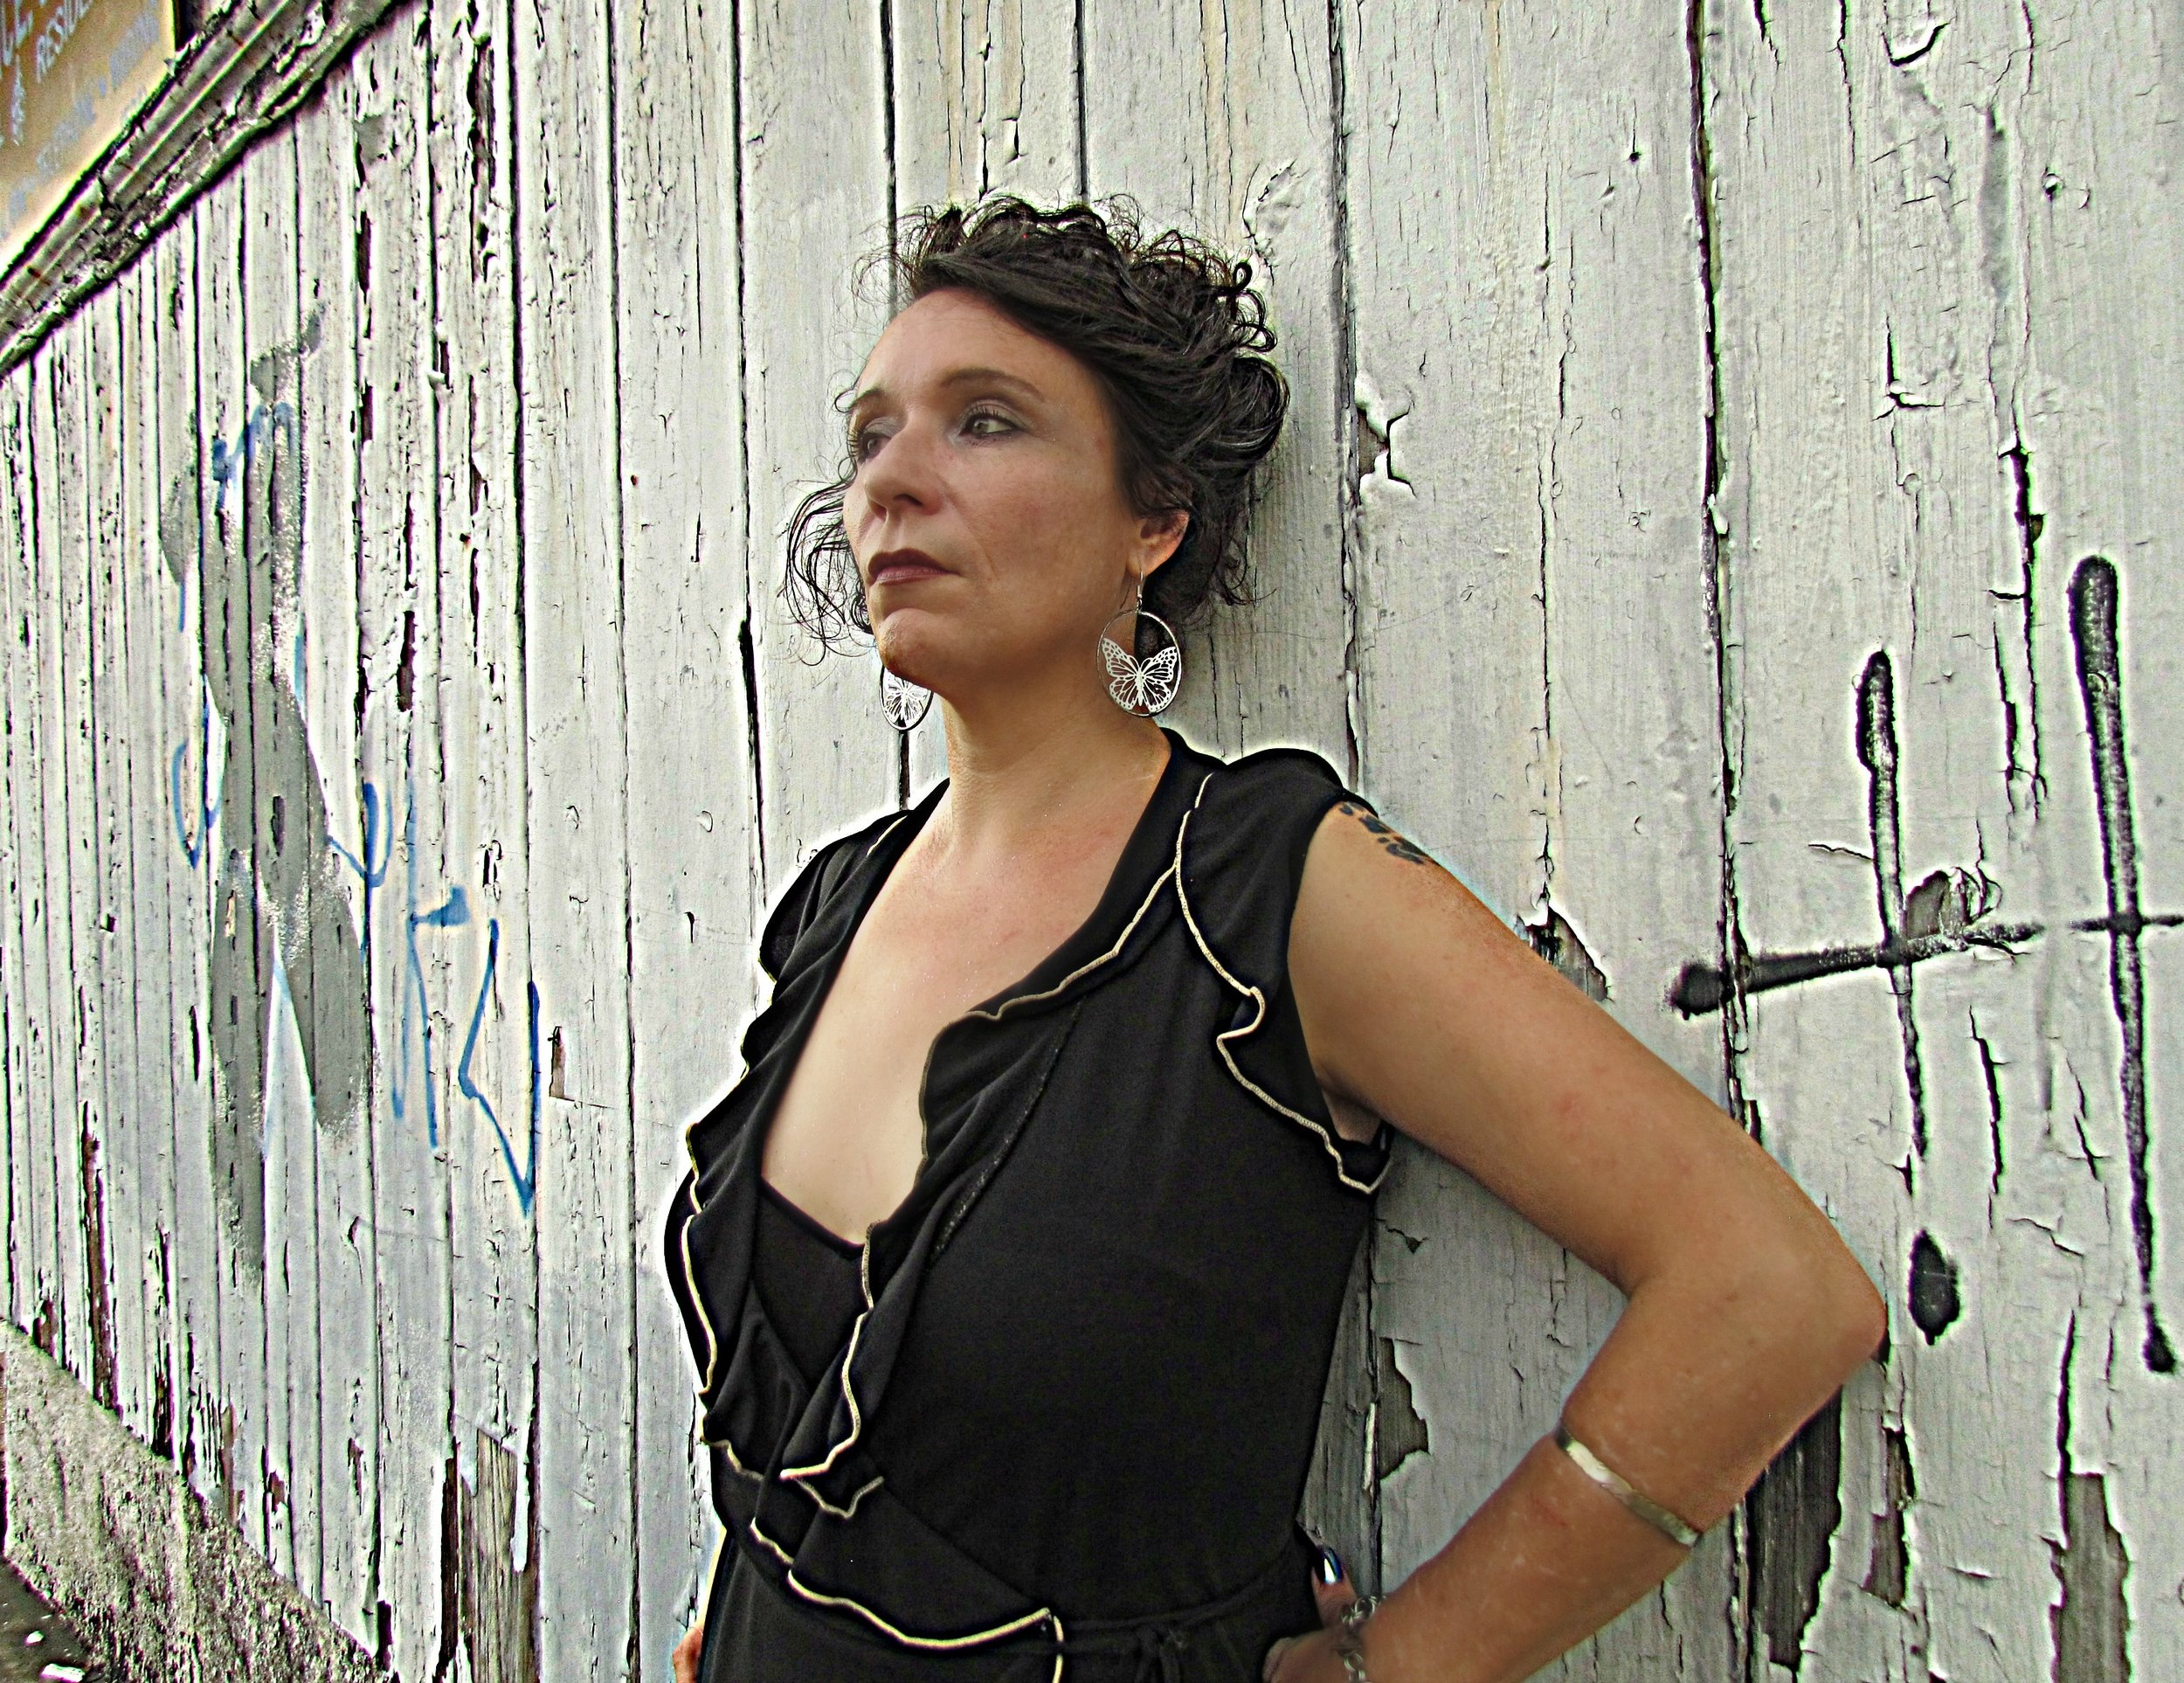 Michelle Embree - is a novelist, a playwright, a performer, a reader of the Tarot, and a spellcaster. She holds a Master Of Fine Arts in Writing from Goddard College. Manstealing For Fat Girlsmichelleembree.commichelleembree1@gmail.com